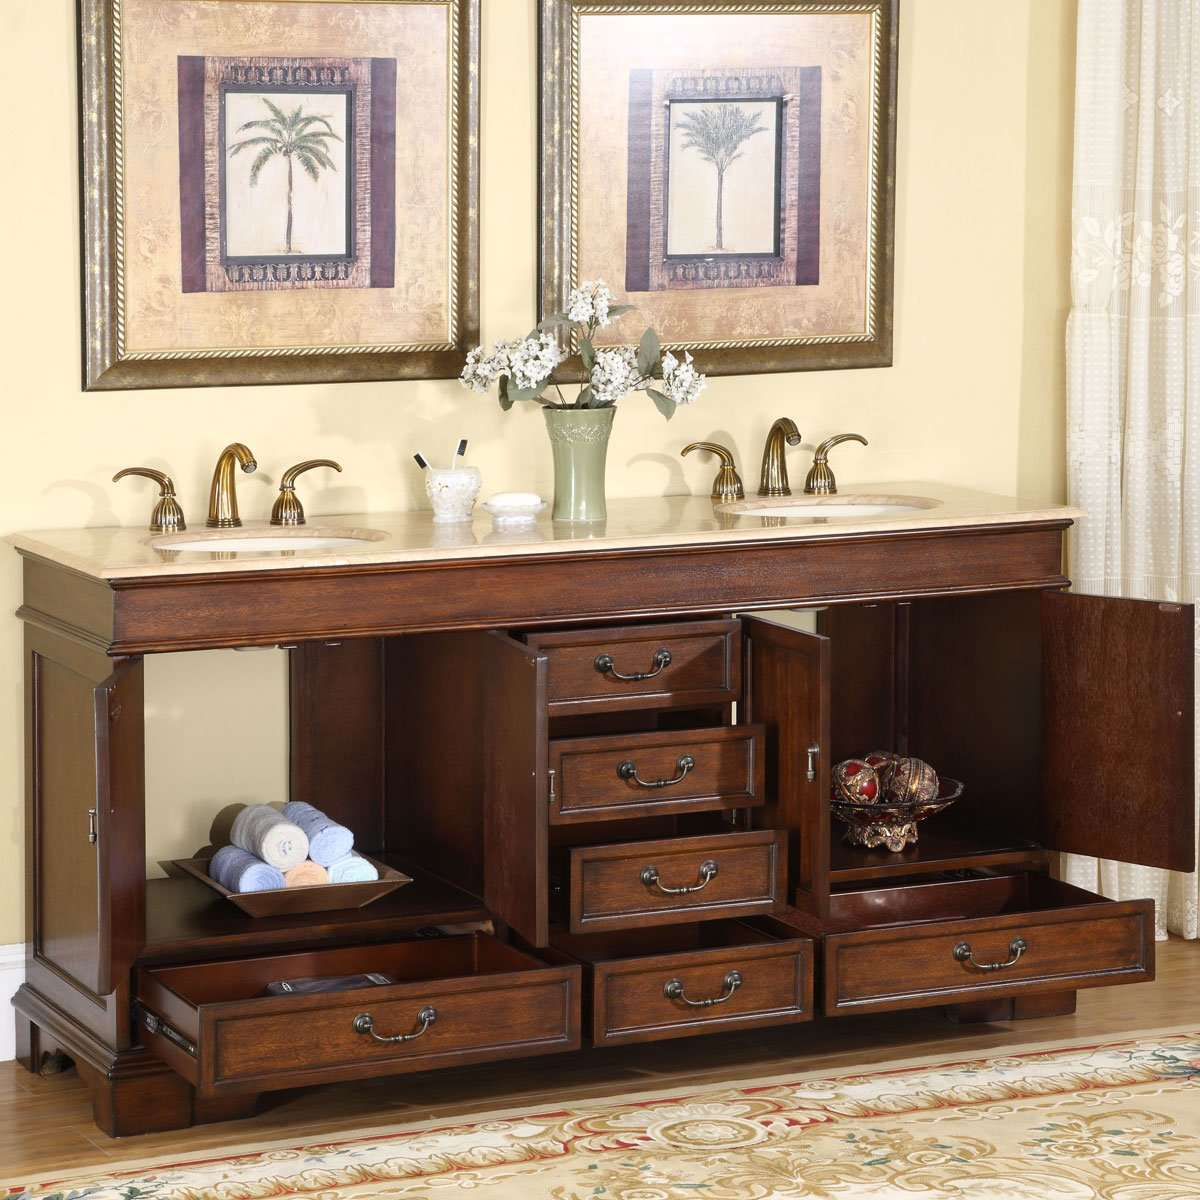 Amazon.com: Silkroad Exclusive Travertine Stone Top Double Sink Bathroom  Vanity With Cabinet, 72 Inch: Home U0026 Kitchen